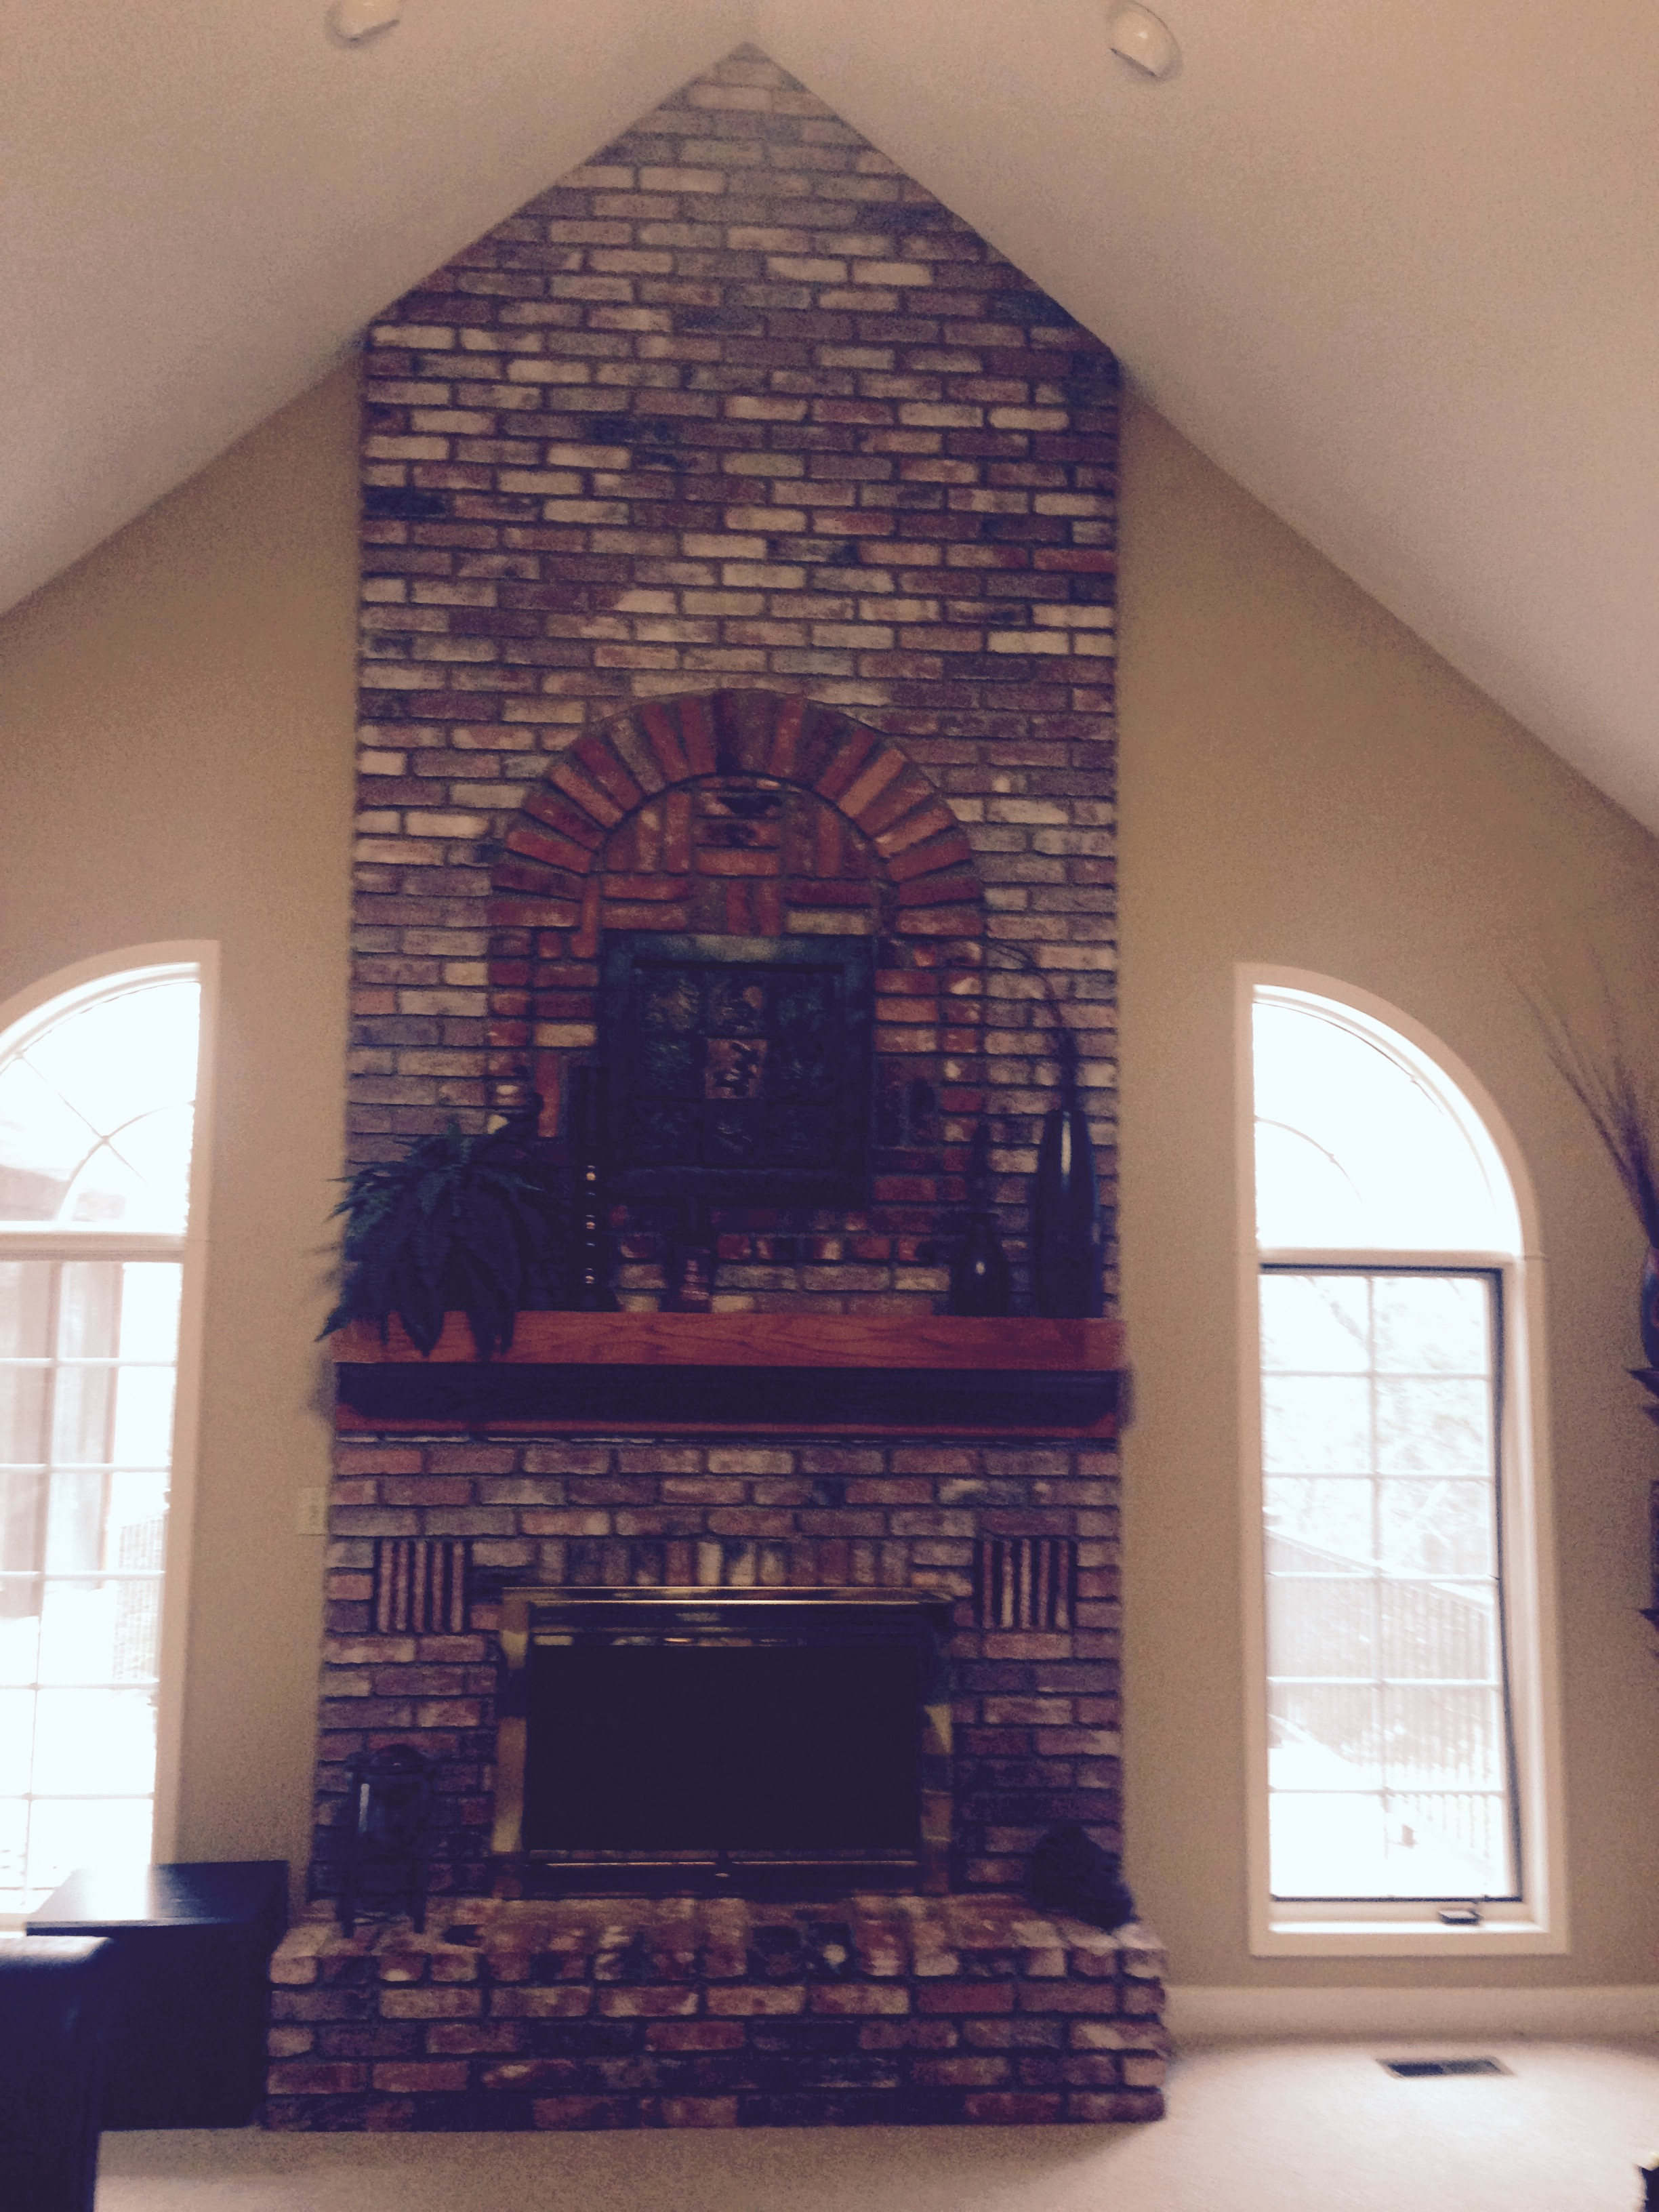 drywall on brick fireplace drywall contractor talk